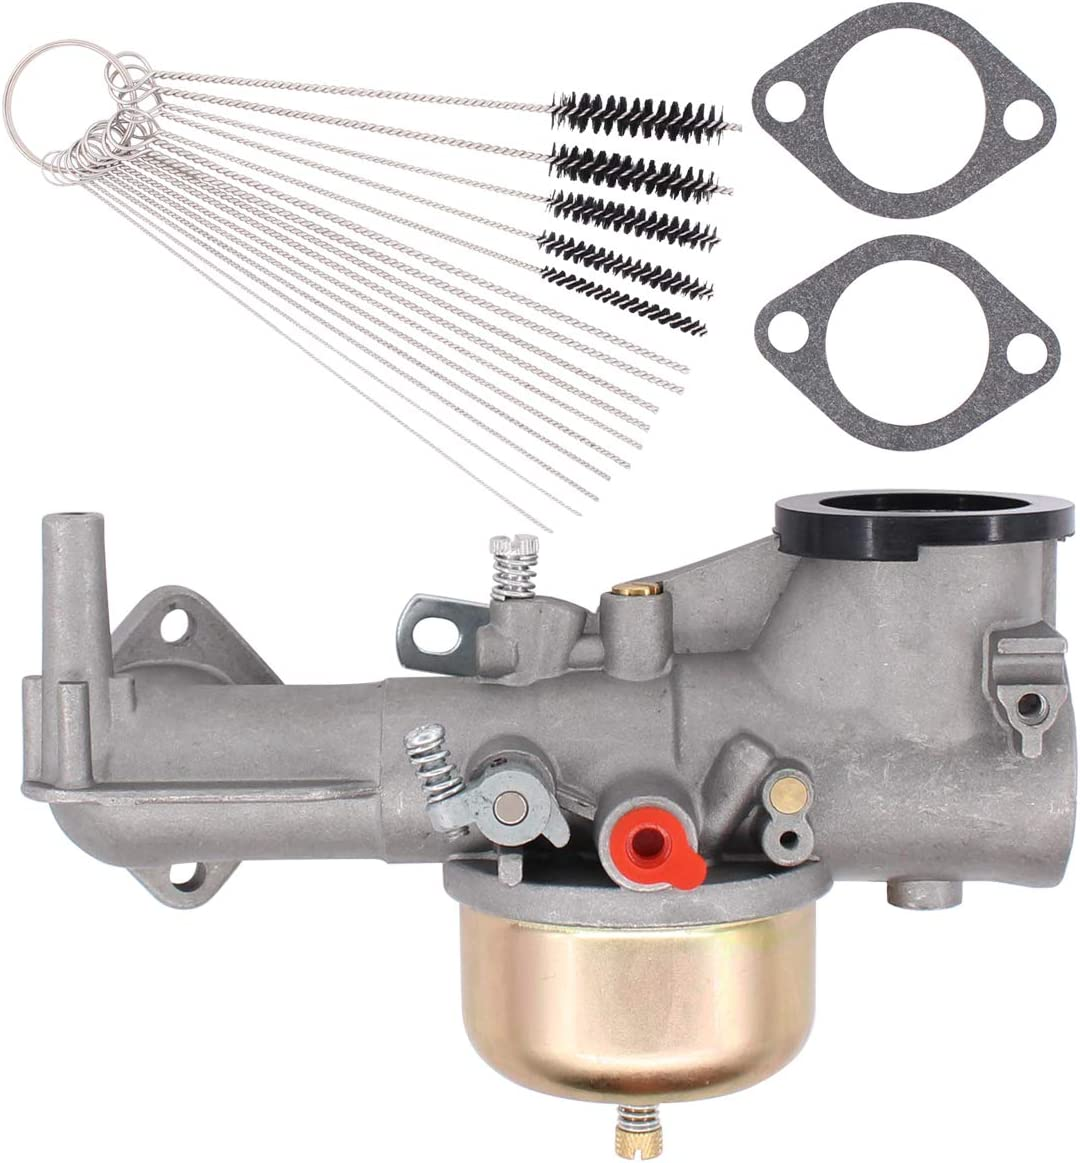 ApplianPar 491590 Carburetor Kit for Carb 390811 392152 191700 192700 193700 Engines with Gaskets and Cleaning Brush Tool kit